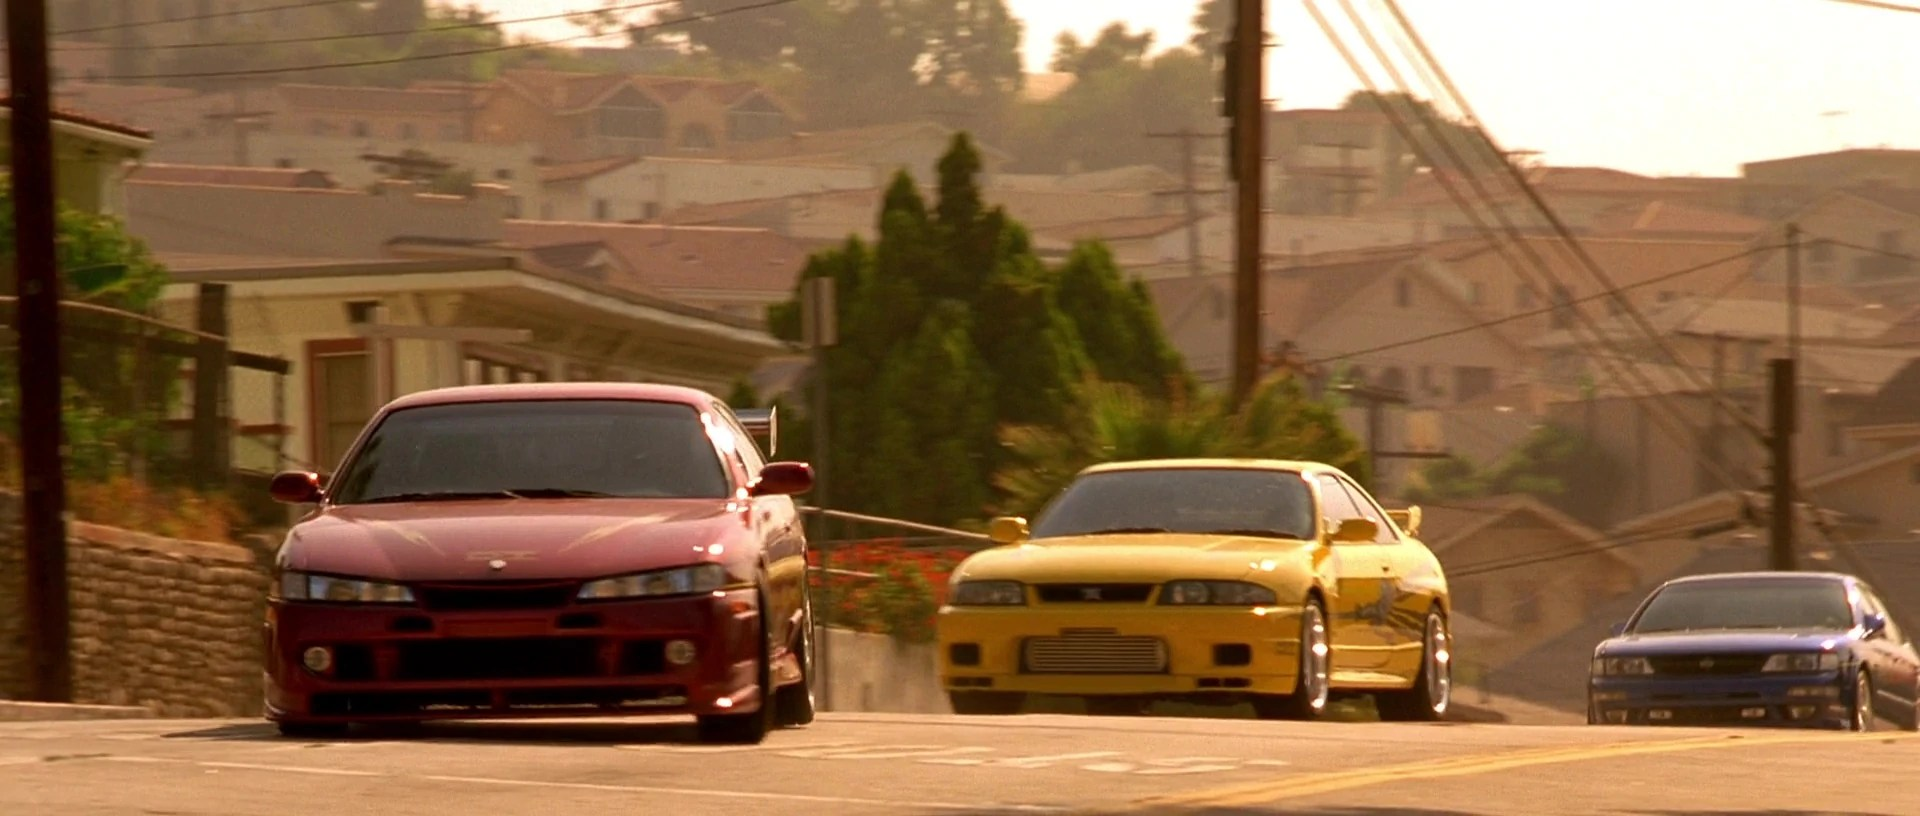 1999 nissan maxima a32 the fast and the furious wiki fandom powered by wikia [ 1920 x 816 Pixel ]